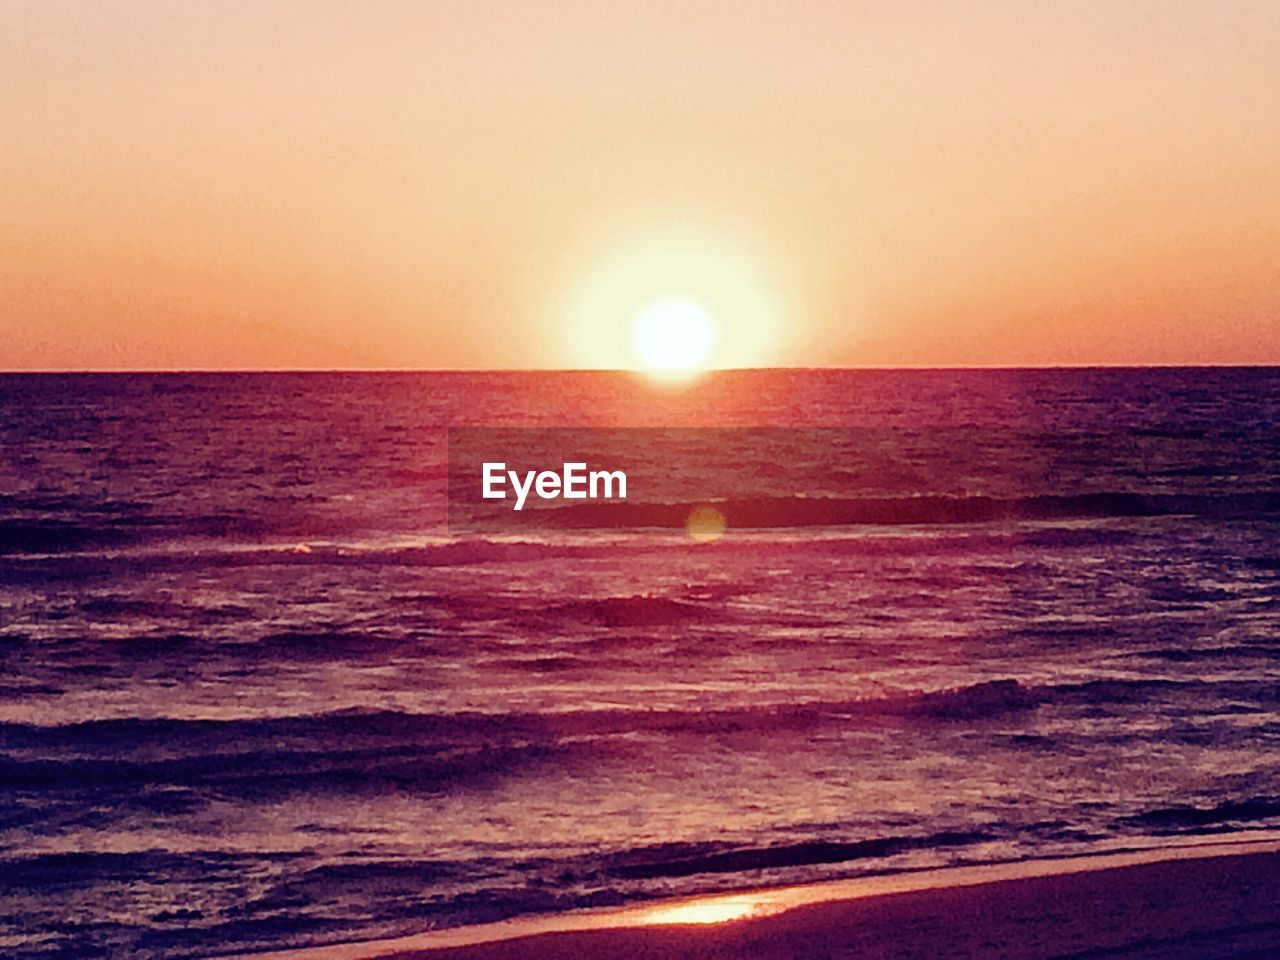 sea, sunset, sun, beauty in nature, horizon over water, nature, scenics, water, tranquil scene, tranquility, idyllic, orange color, beach, sky, wave, no people, outdoors, sunlight, clear sky, day